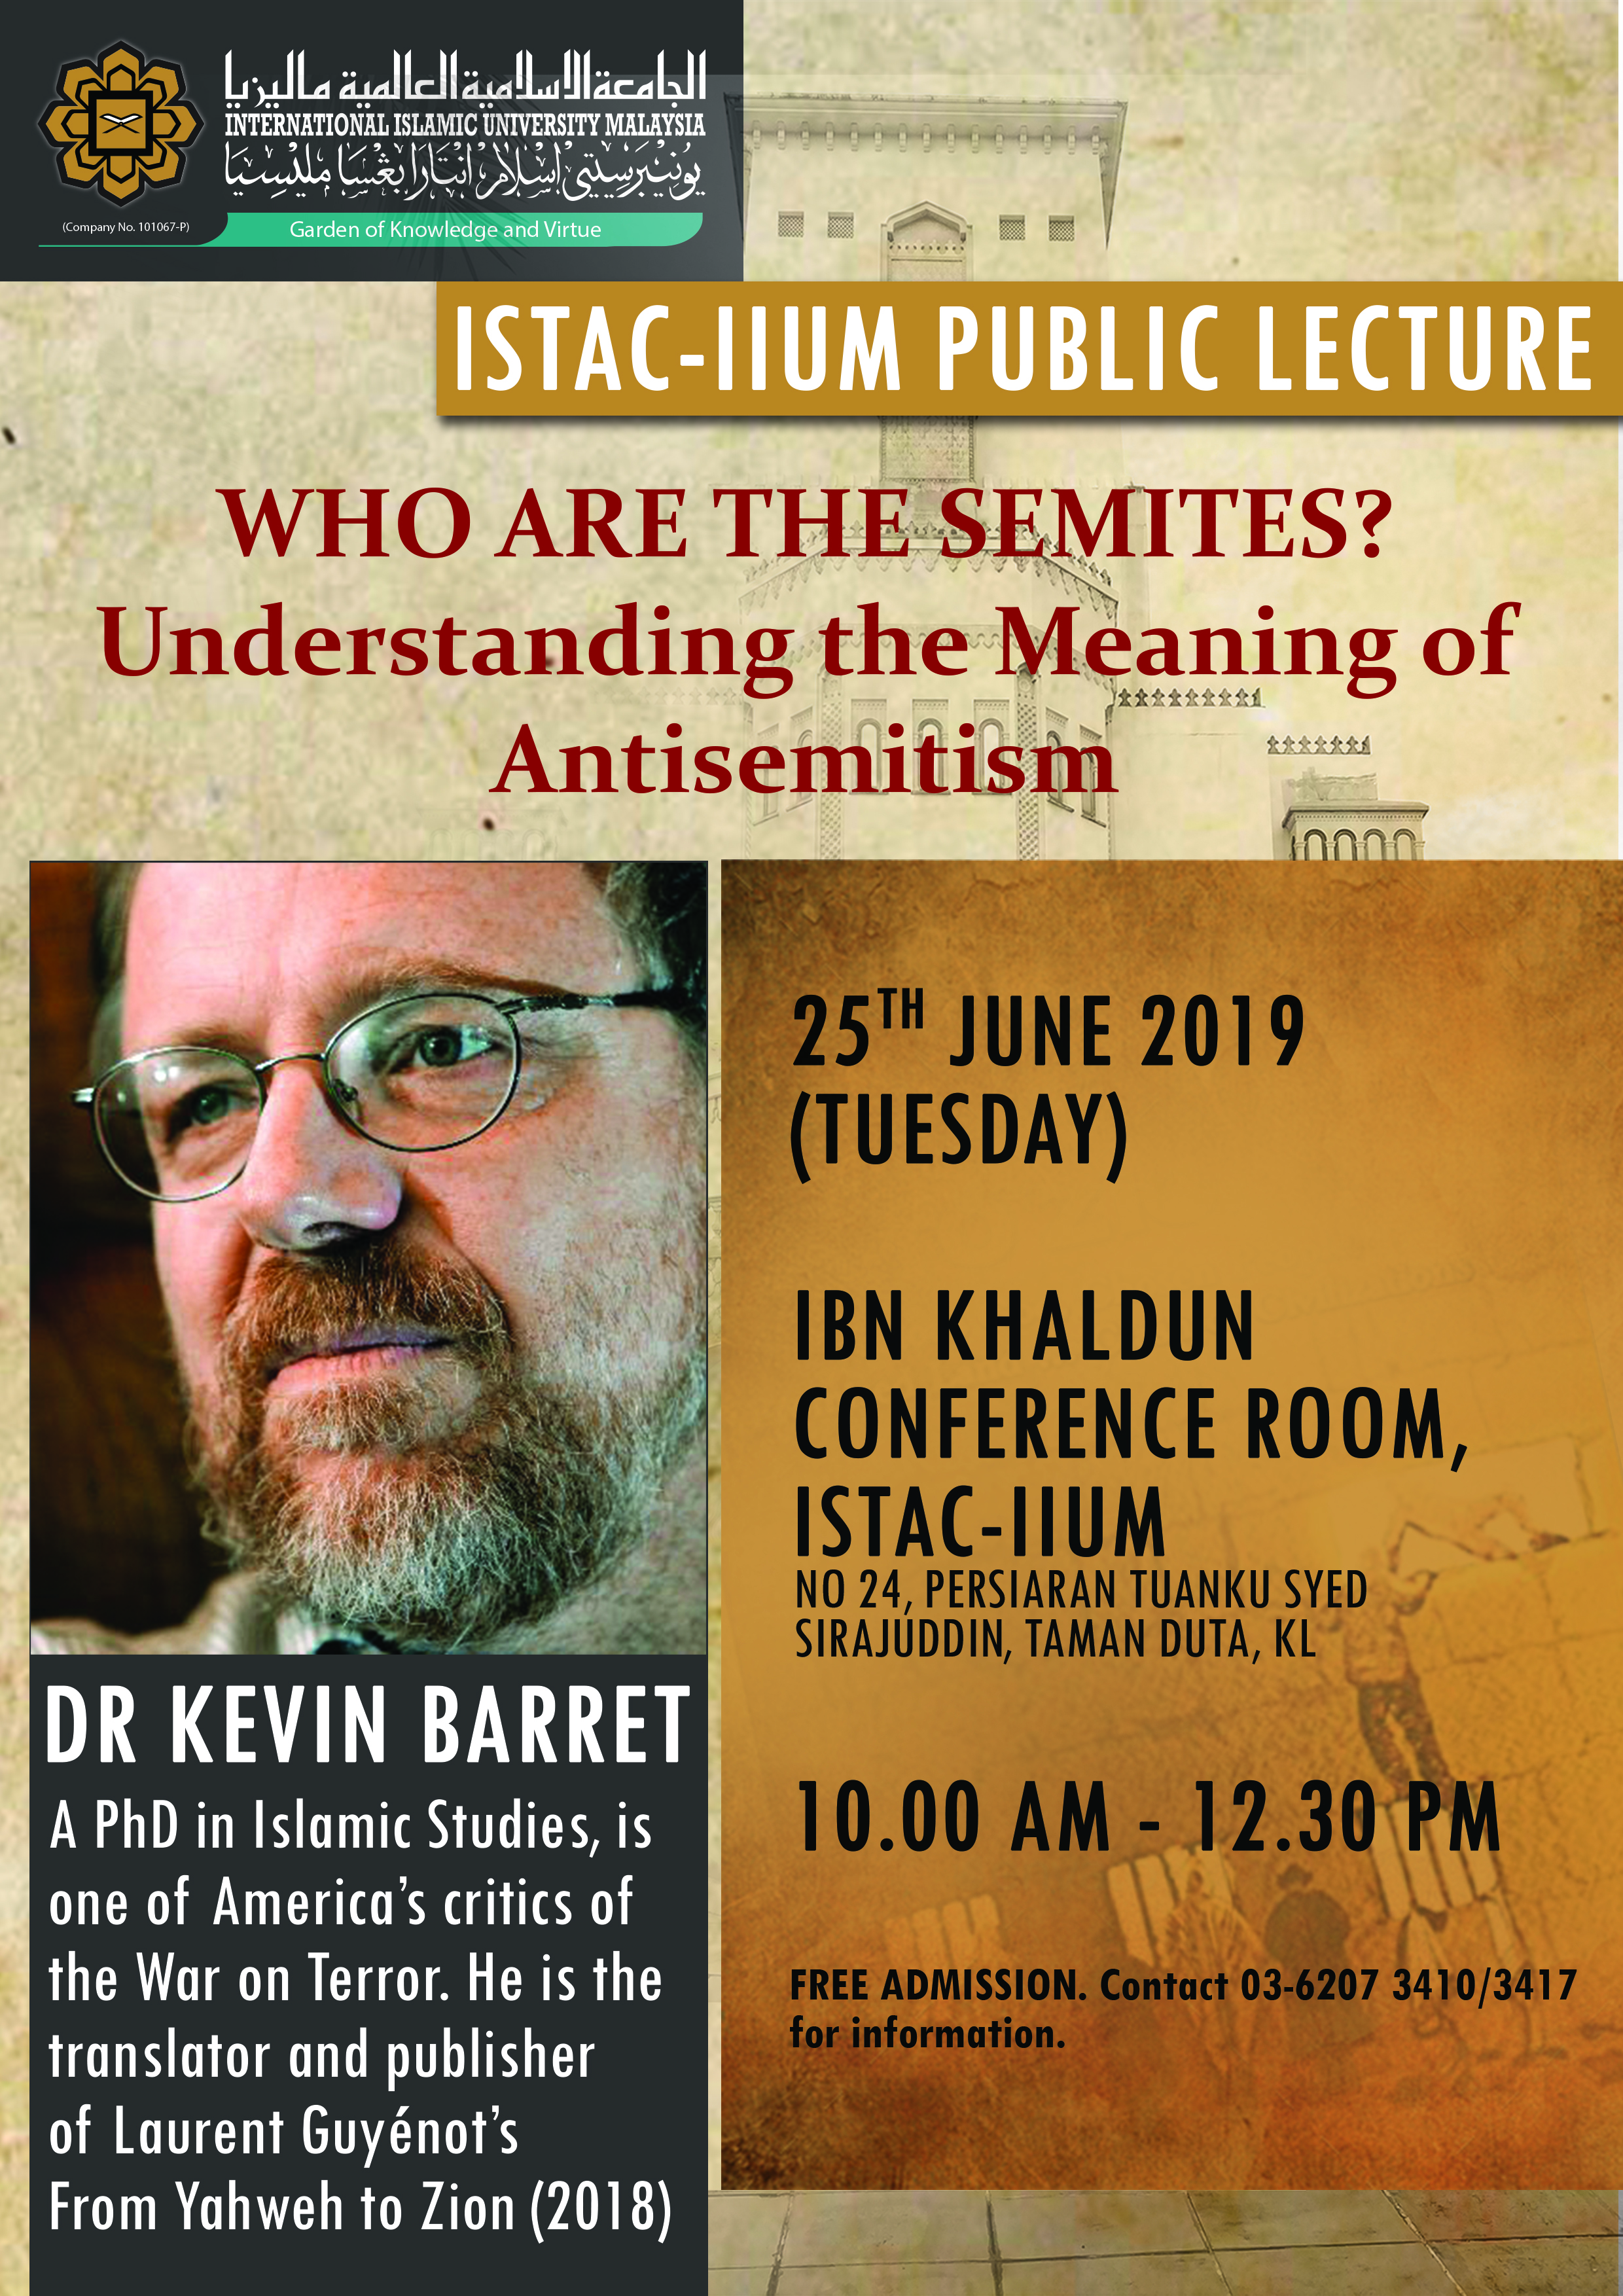 IIUM-ISTAC PUBLIC LECTURE - WHO ARE THE SEMITES?